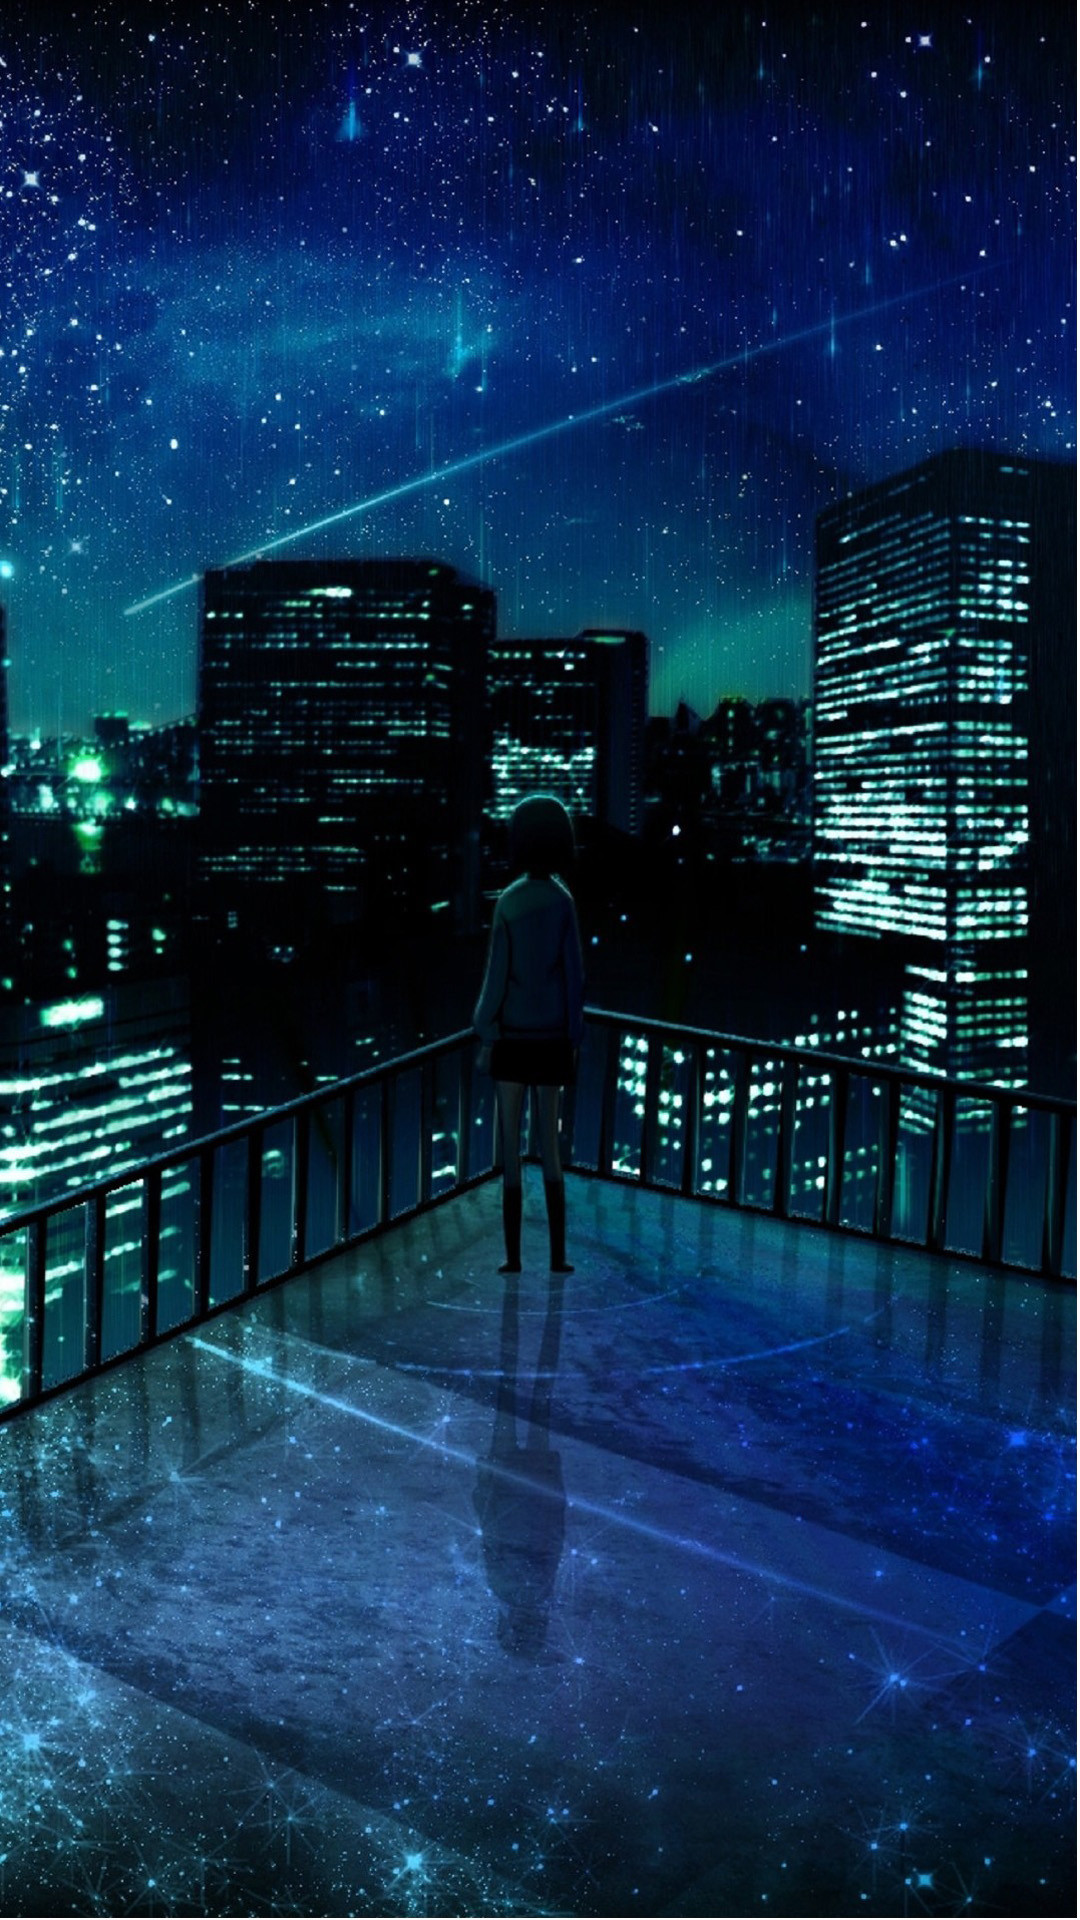 1080x1920 Girl Looking At Falling Star iPhone 6 Plus HD Wallpaper